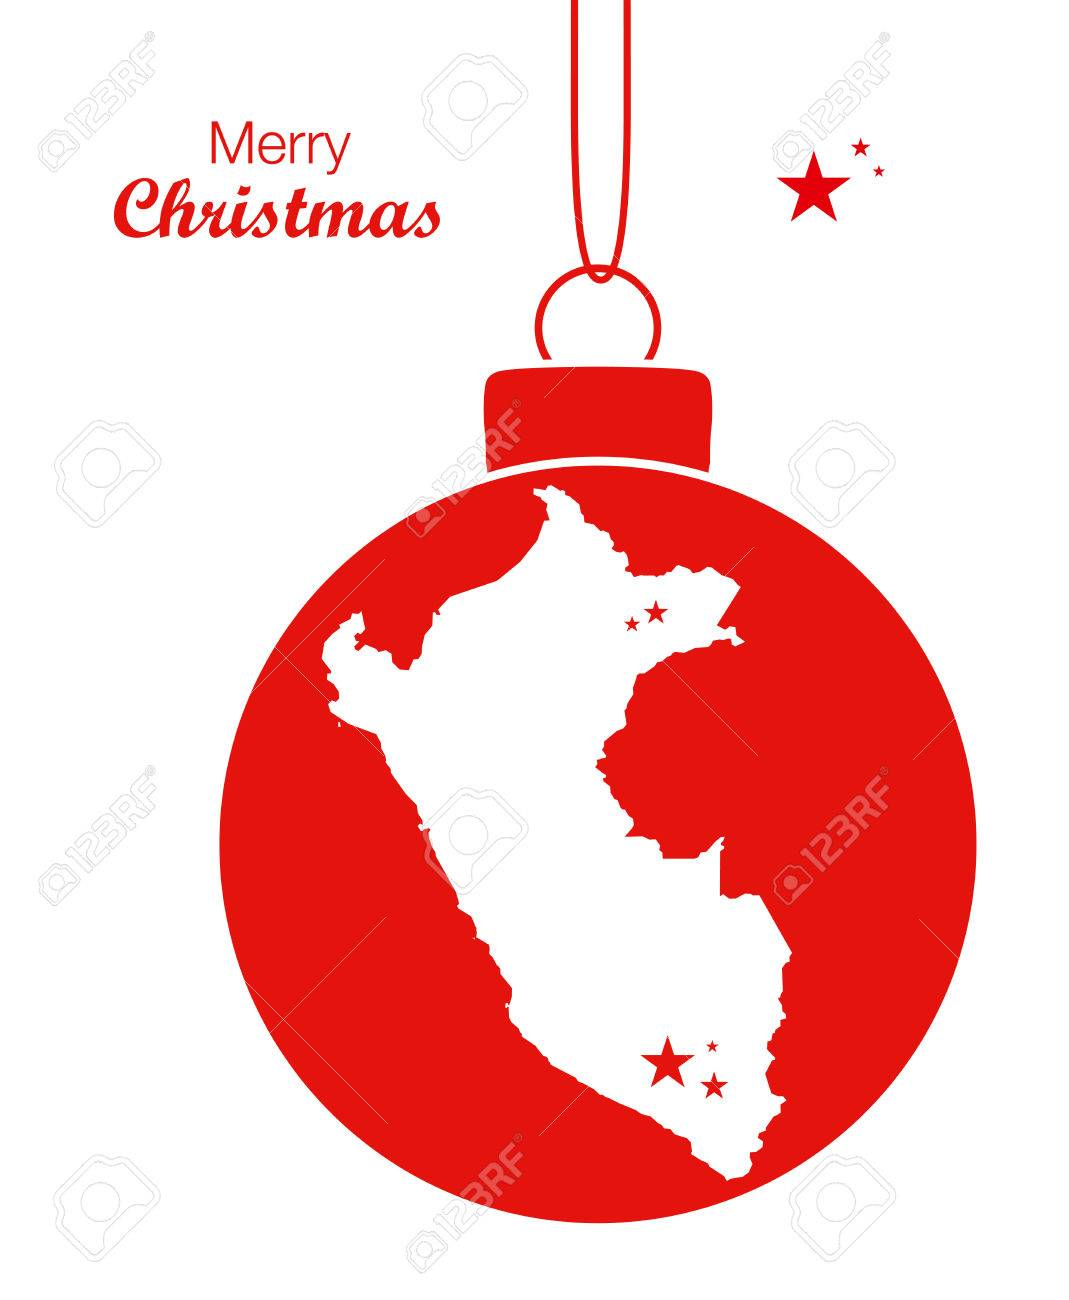 Peruvian christmas ornaments - Merry Christmas Map Peru Stock Vector 65555294